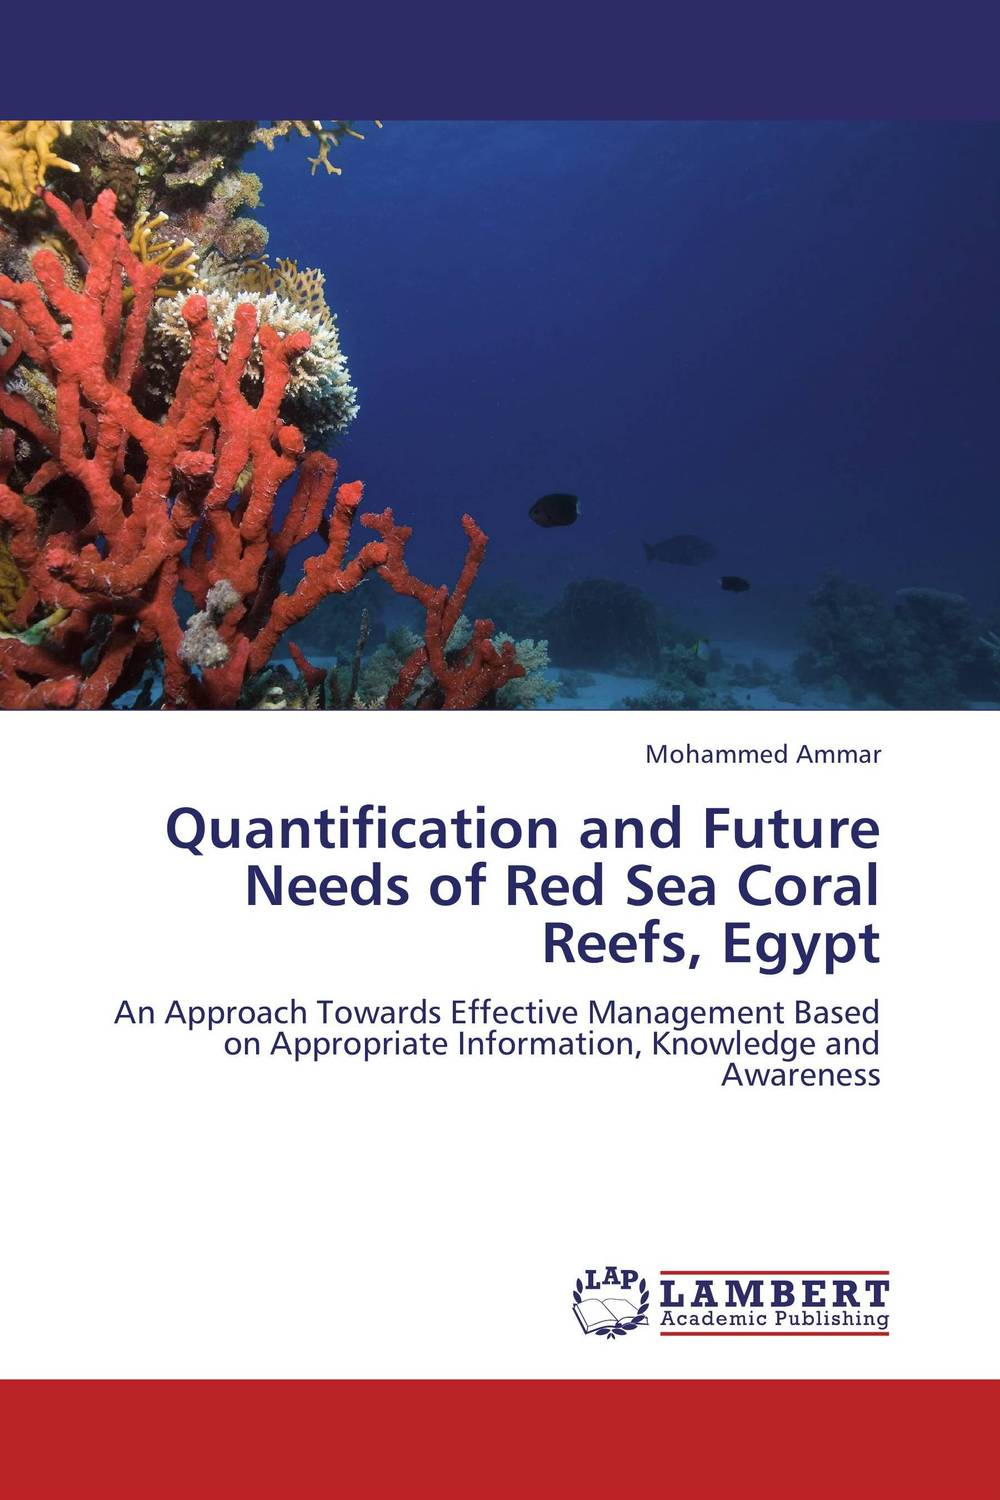 Quantification and Future Needs of  Red Sea Coral Reefs, Egypt coral health and disease in the red sea egypt